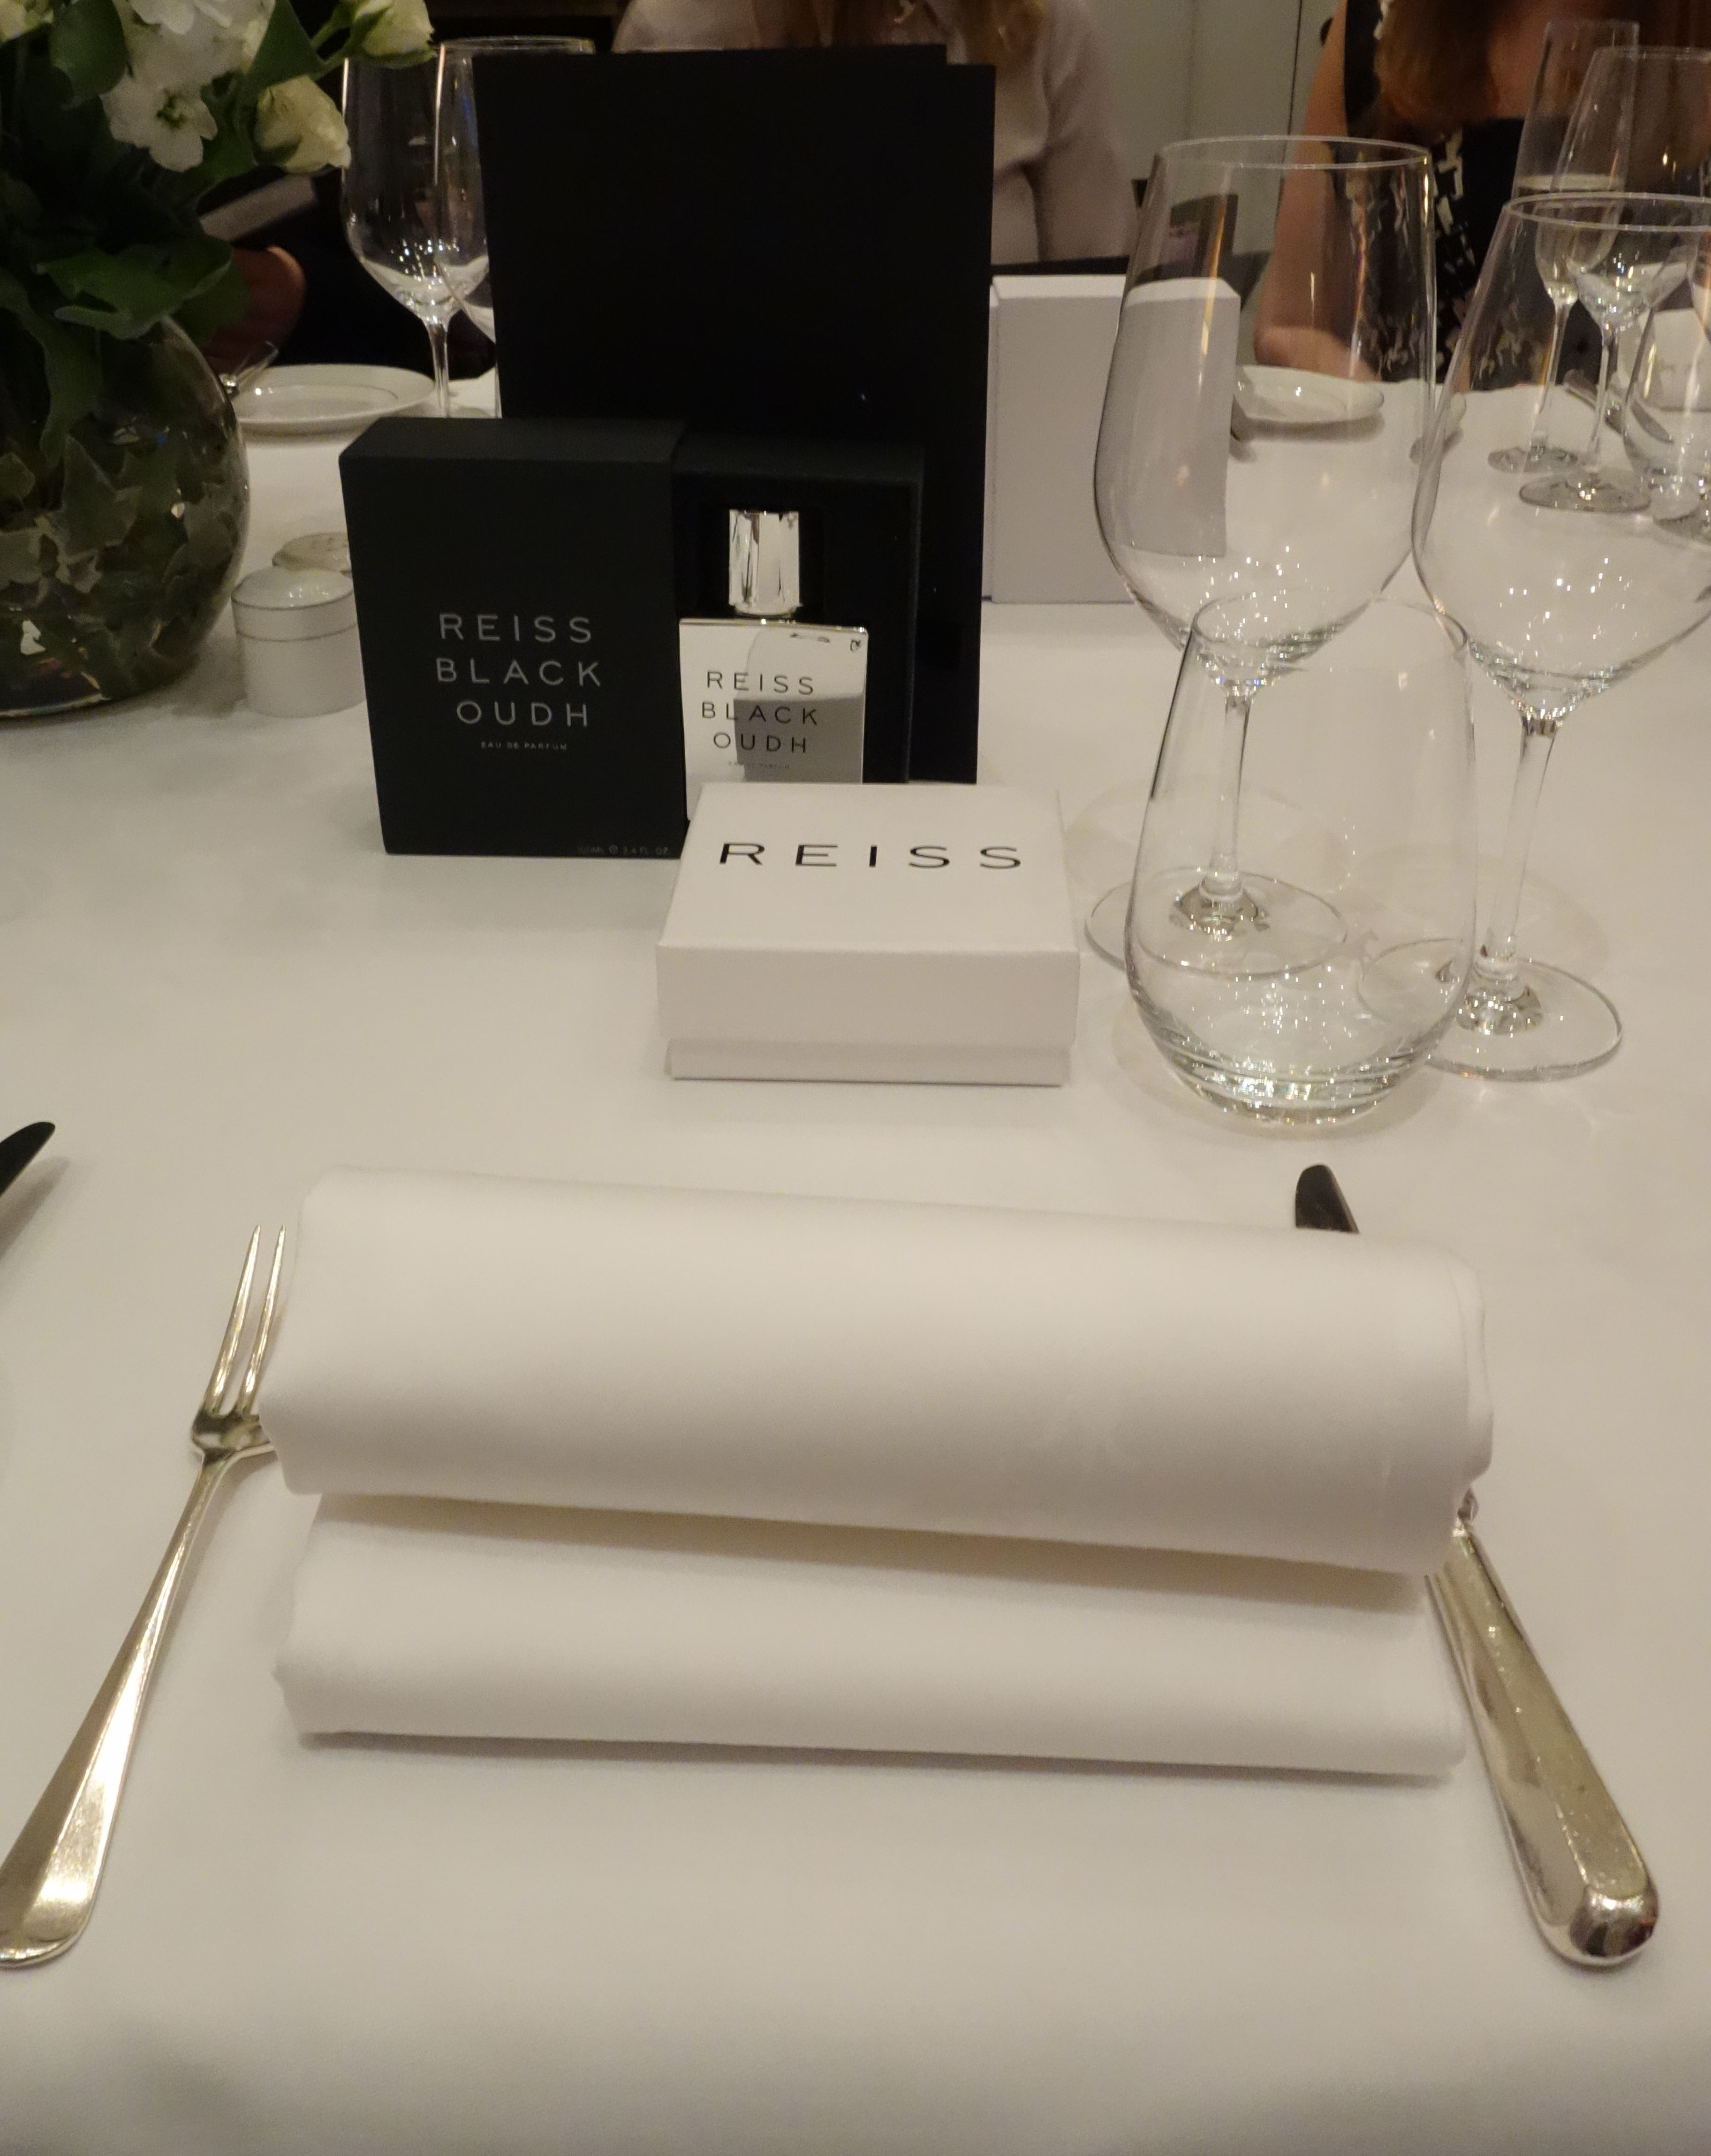 Reiss Roux Event